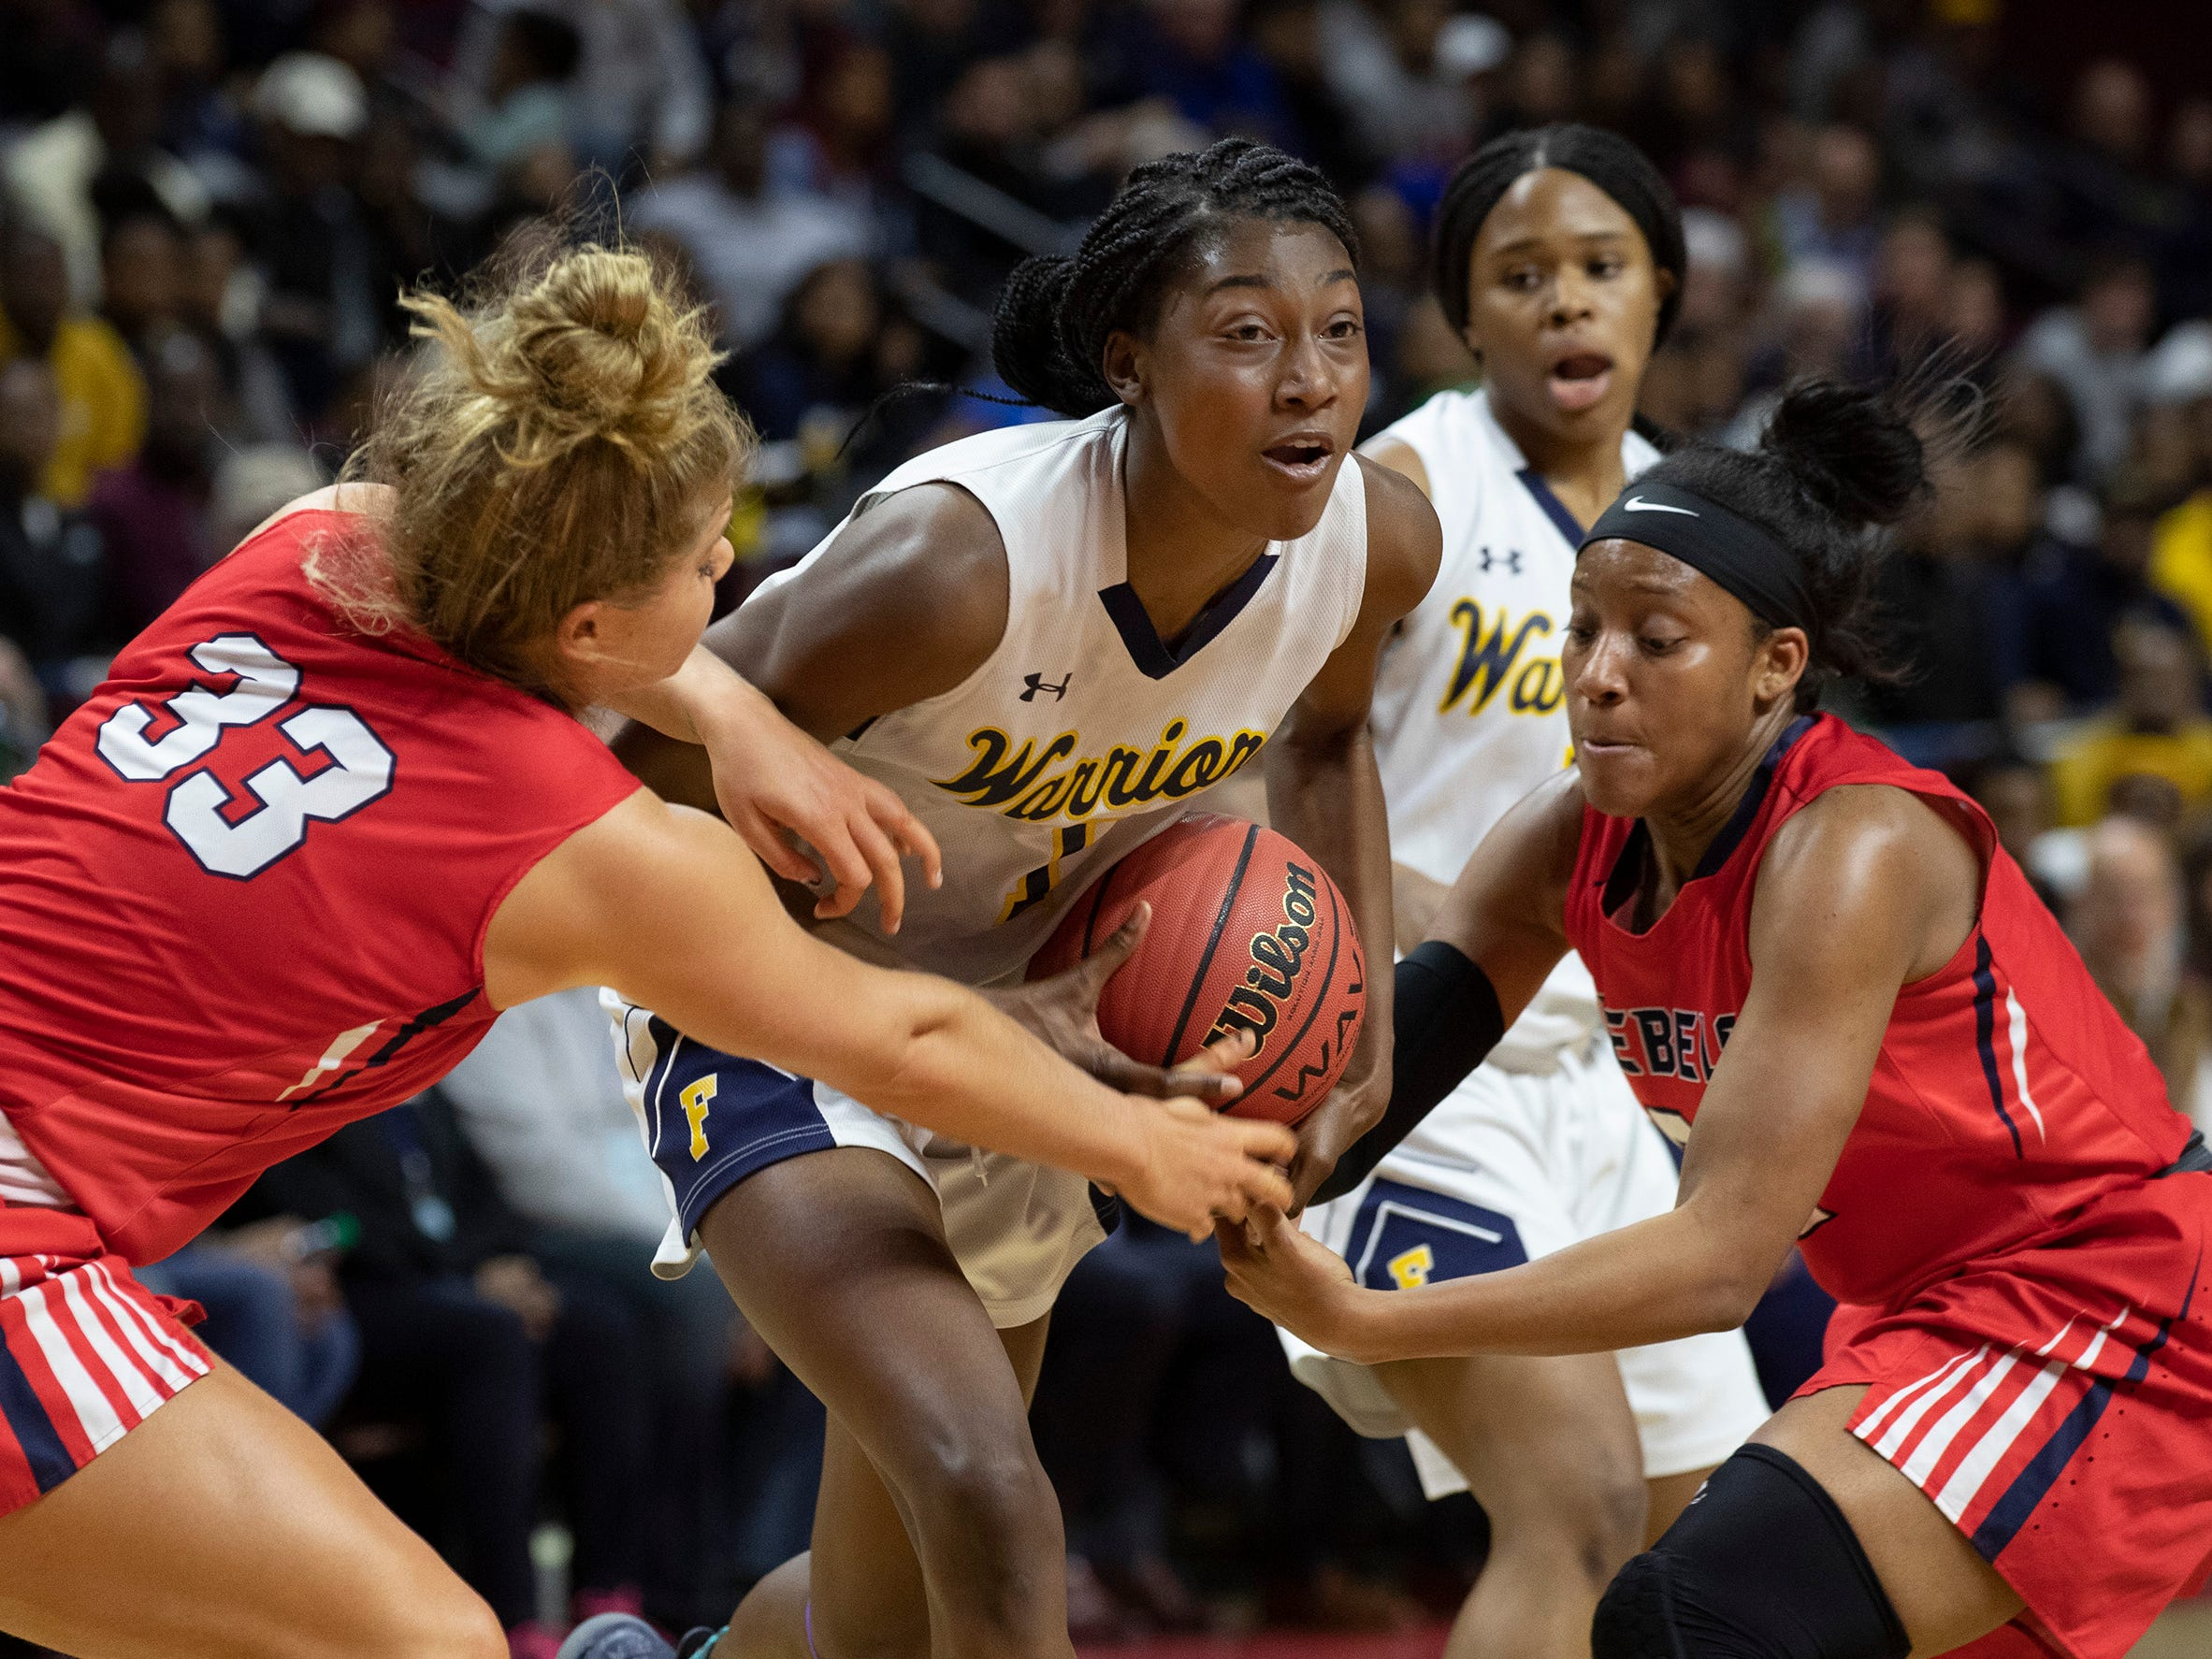 Franklin's Diamond Miller (1) tries to secure the ball from Saddle River Day defenders Jenna Jordan (33) and Sydnei Caldwell. 2019 NJSIAA girls basketball Tournament of Champions final in Piscataway, N.J. on March 17, 2019.